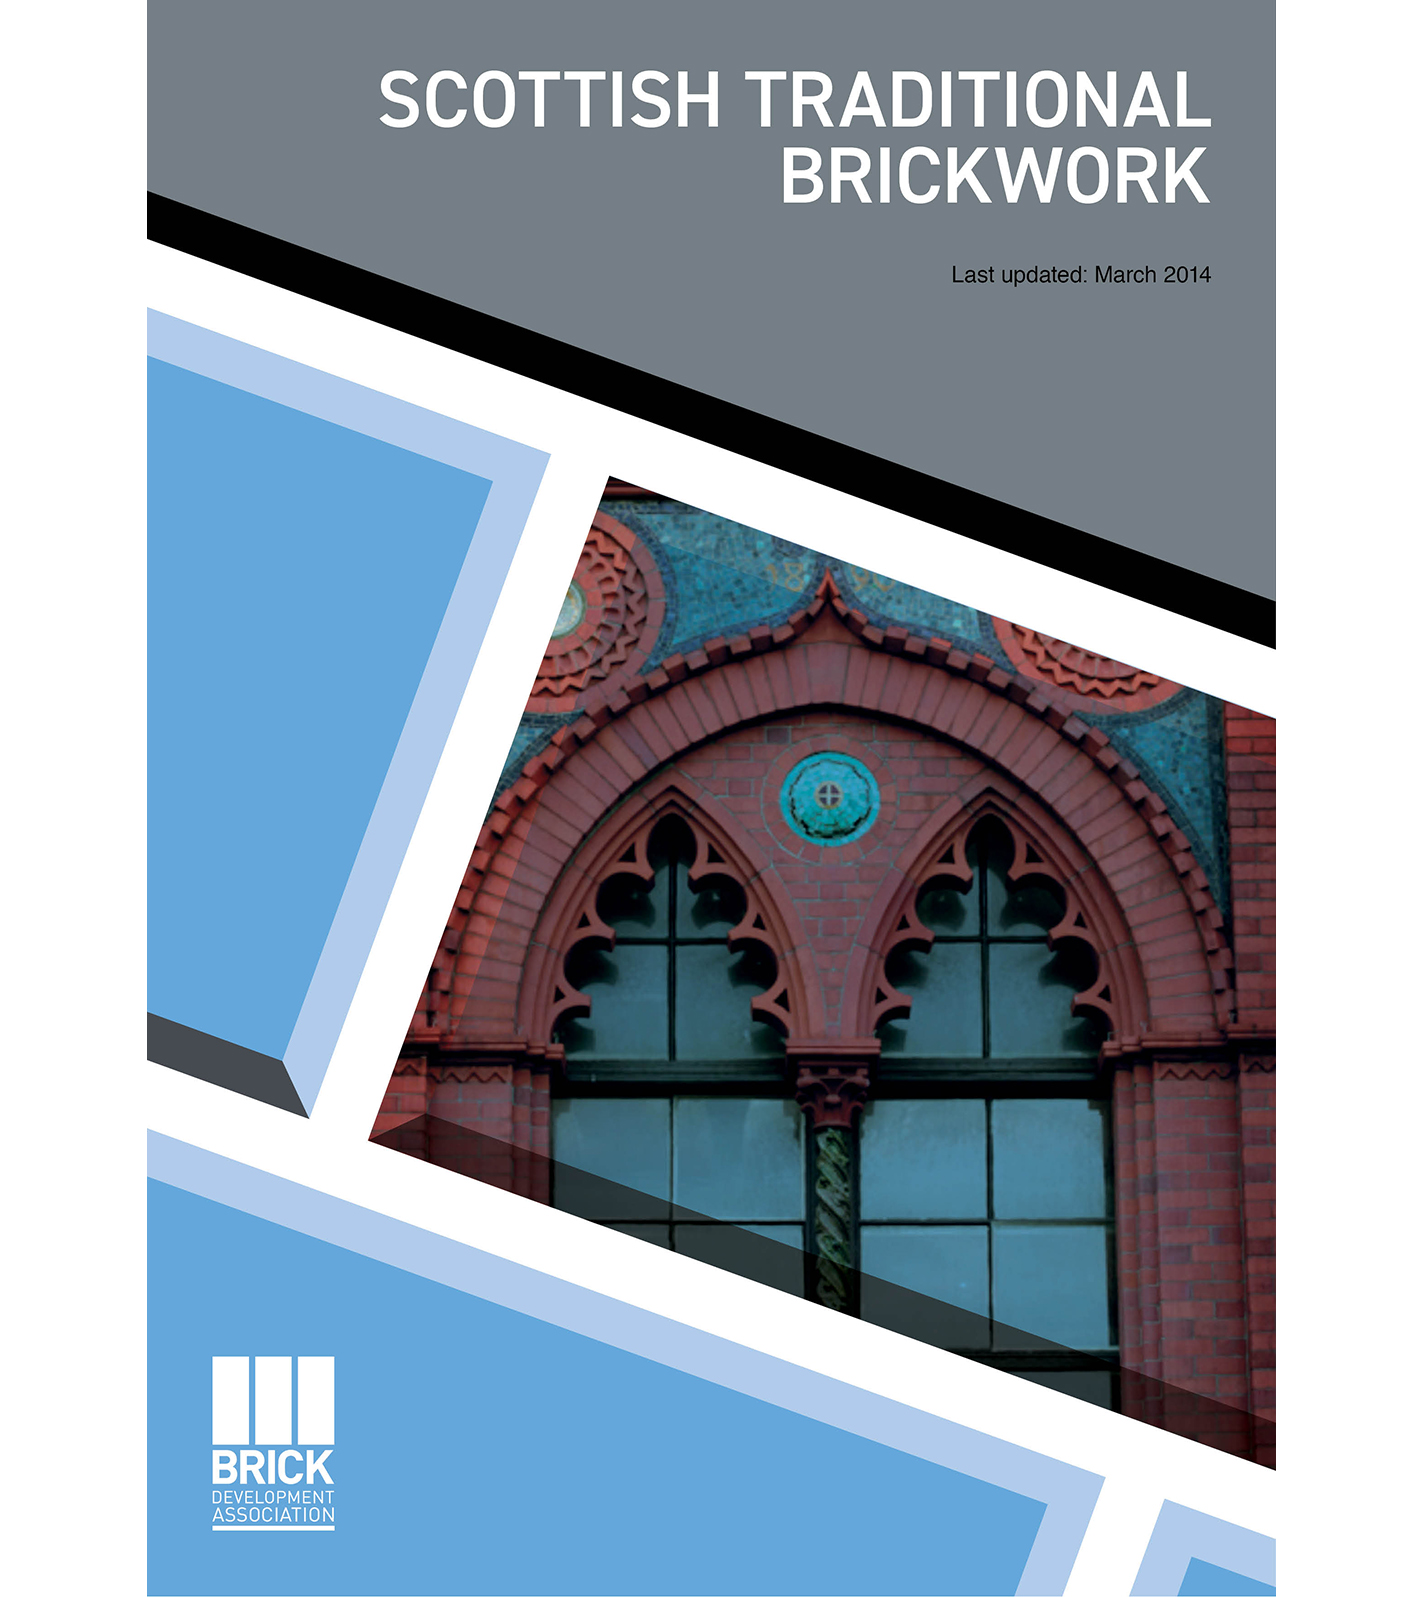 SCOTTISH TRADITIONAL BRICKWORK